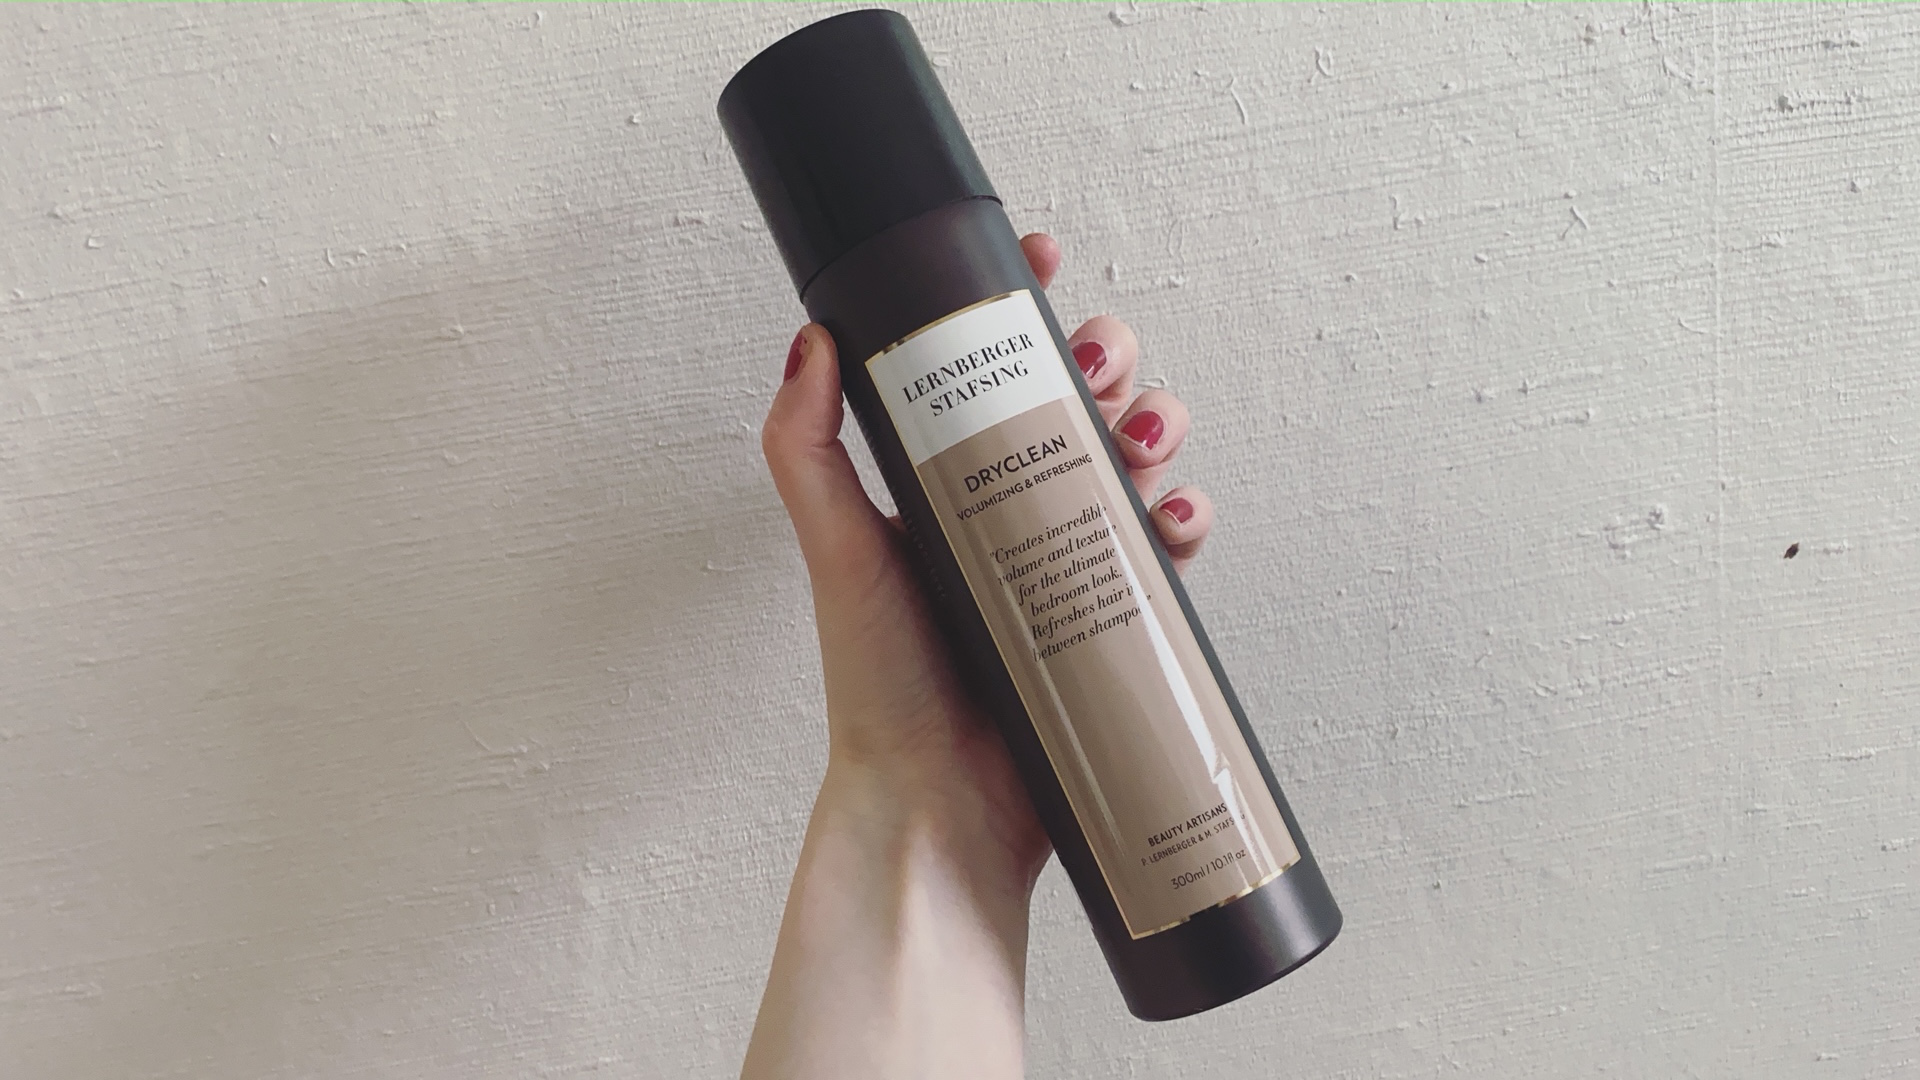 Recension-Lernberger-Stafsing-Dryclean-Volumizing-and-Refreshing